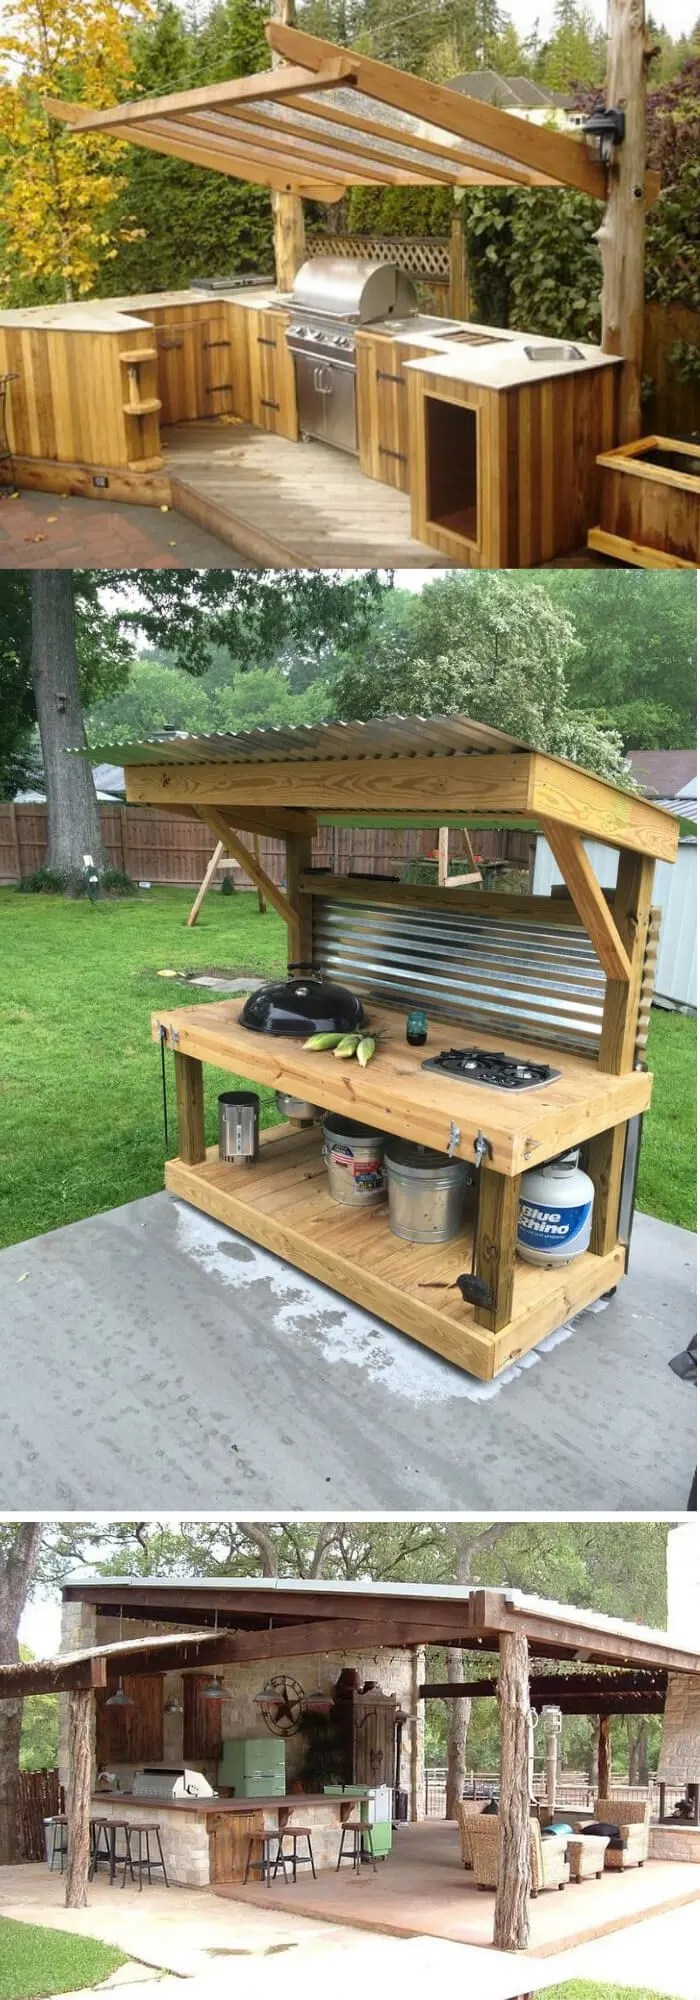 Cheap Outdoor Kitchen | DIY Outdoor Kitchen Ideas (Cheap, Simple, Modern, and Country)